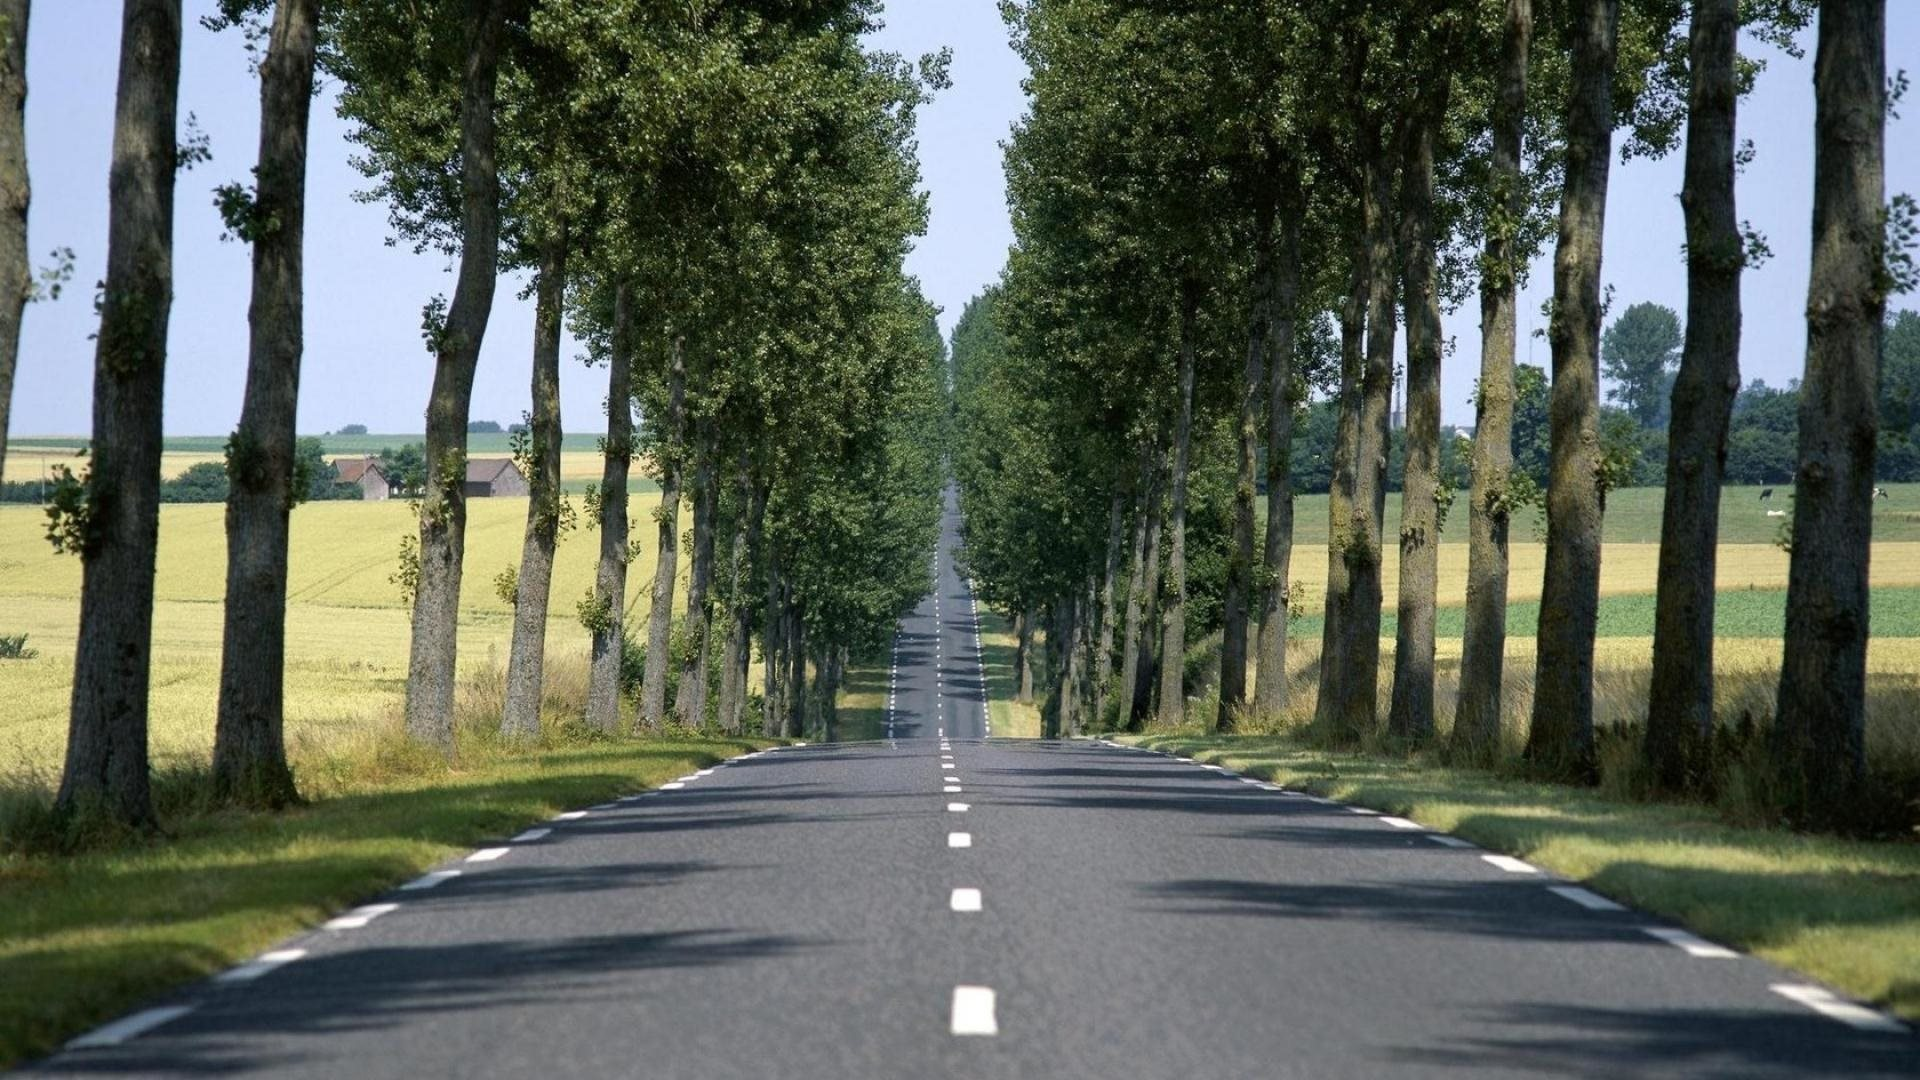 F1 Car Desktop Wallpaper Straight Road Lined By Trees 1920 X 1080